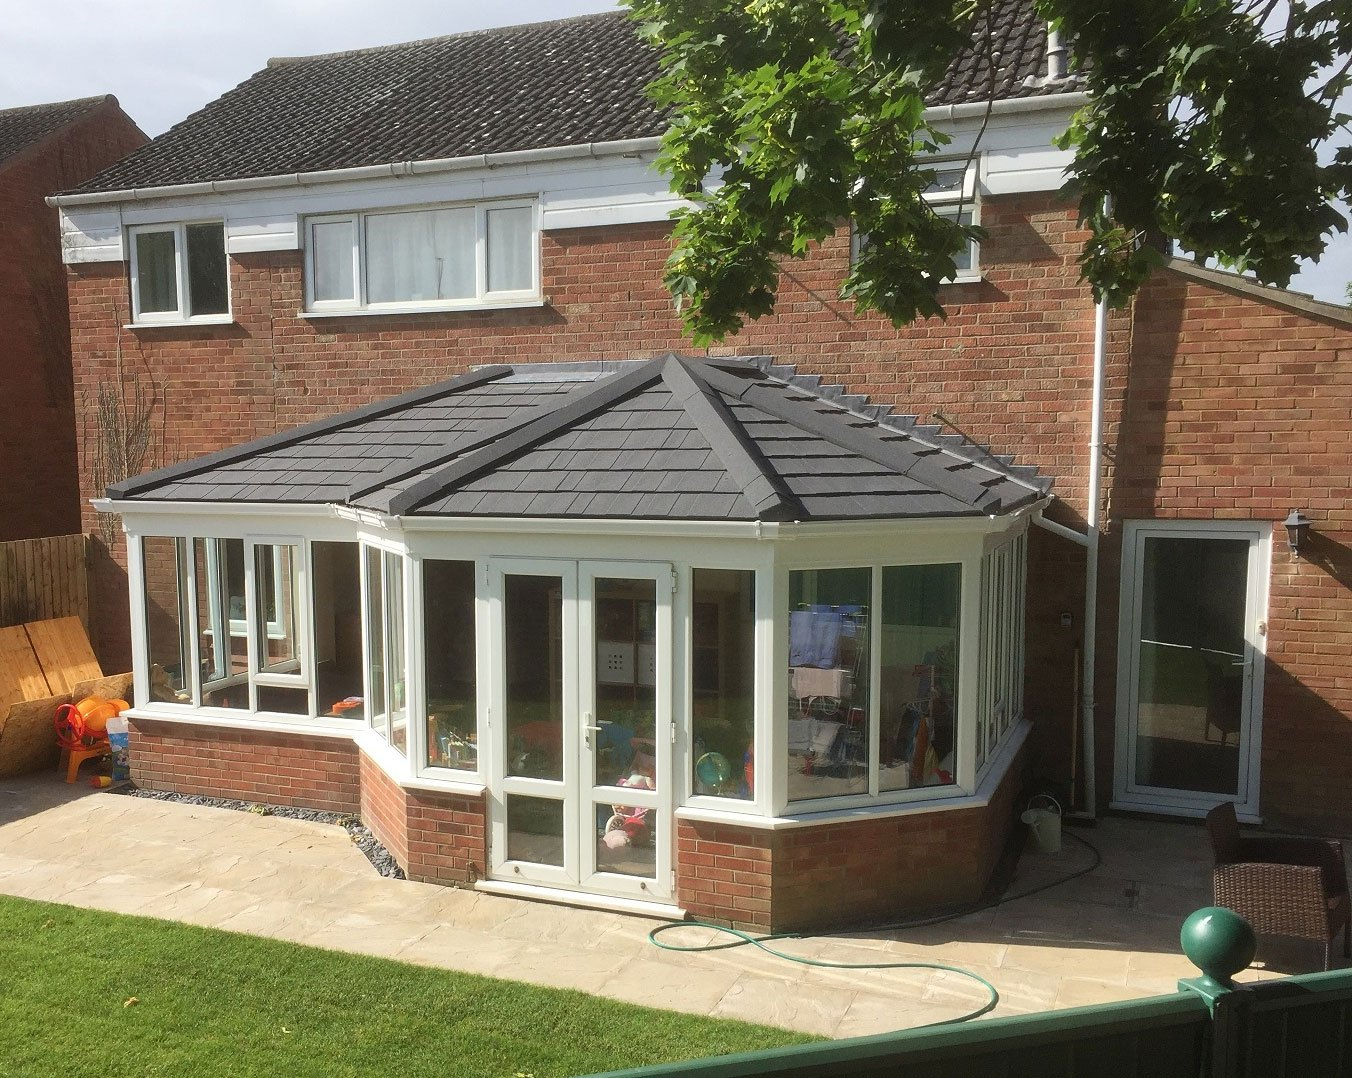 P Shaped Tiled Conservatory Roof